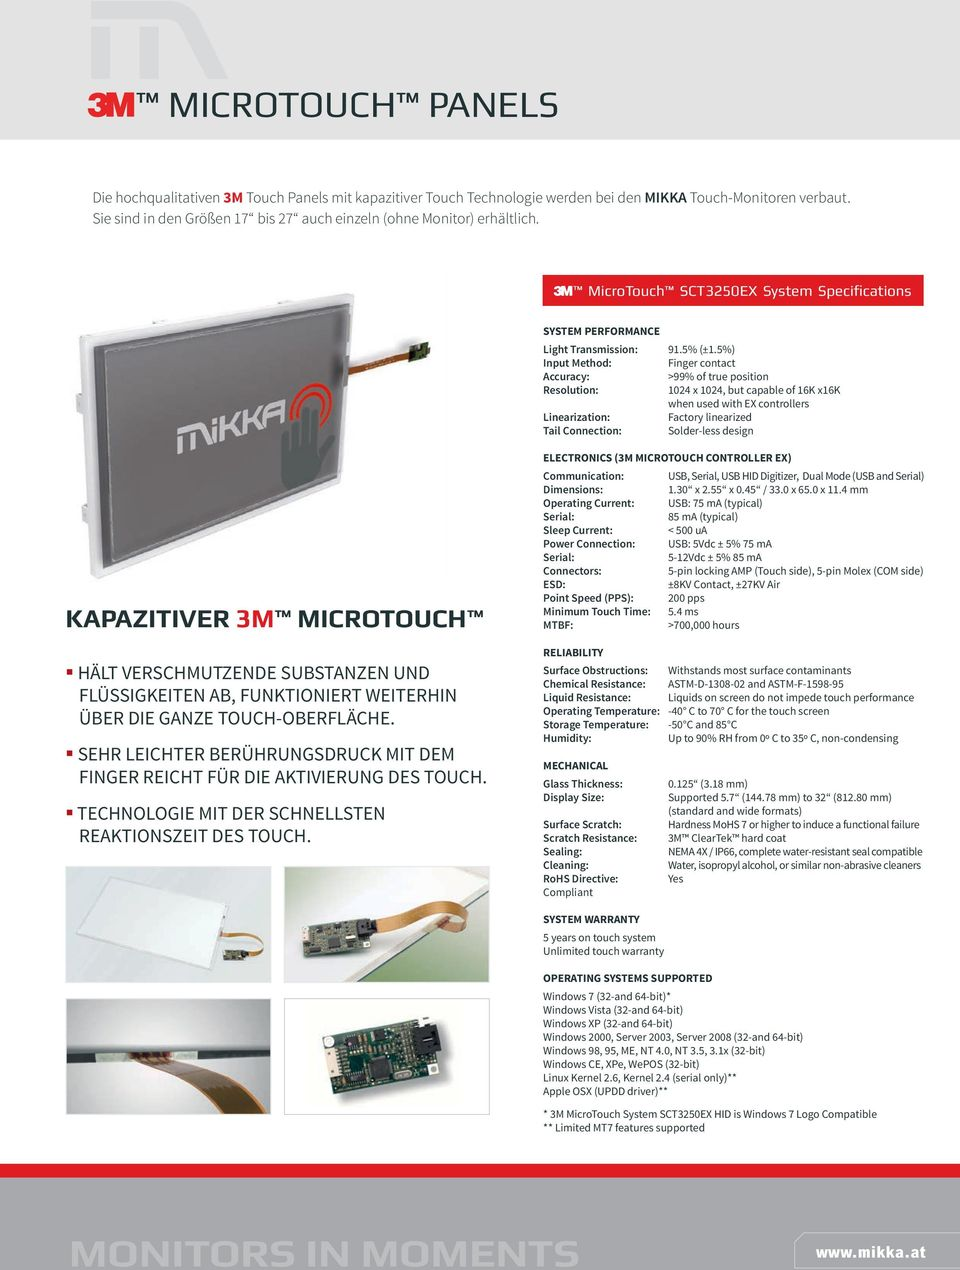 MicroTouch SCT3250EX System Specifications SYSTEM PERFORMANCE Light Transmission: Input Method: Accuracy: Resolution: Linearization: Tail Connection: 91.5% (±1.